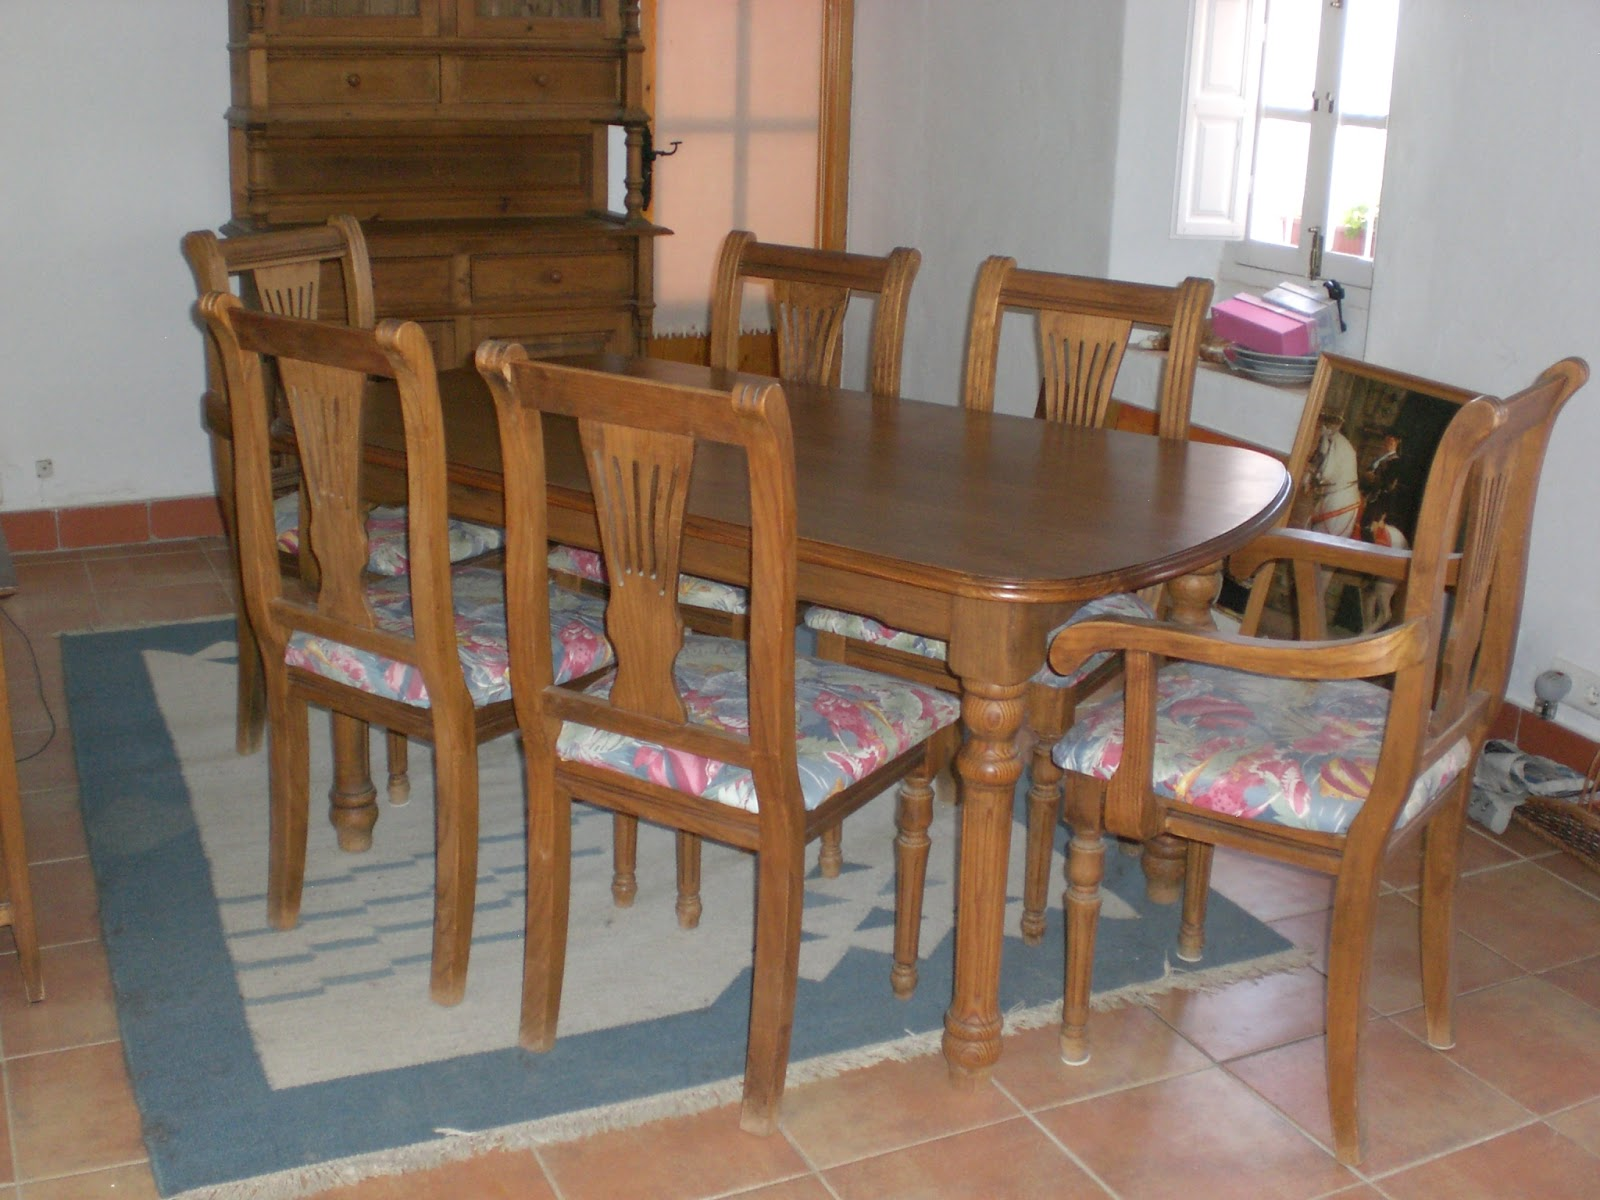 Digame for sale dining room furniture for Dining room table and chairs for sale